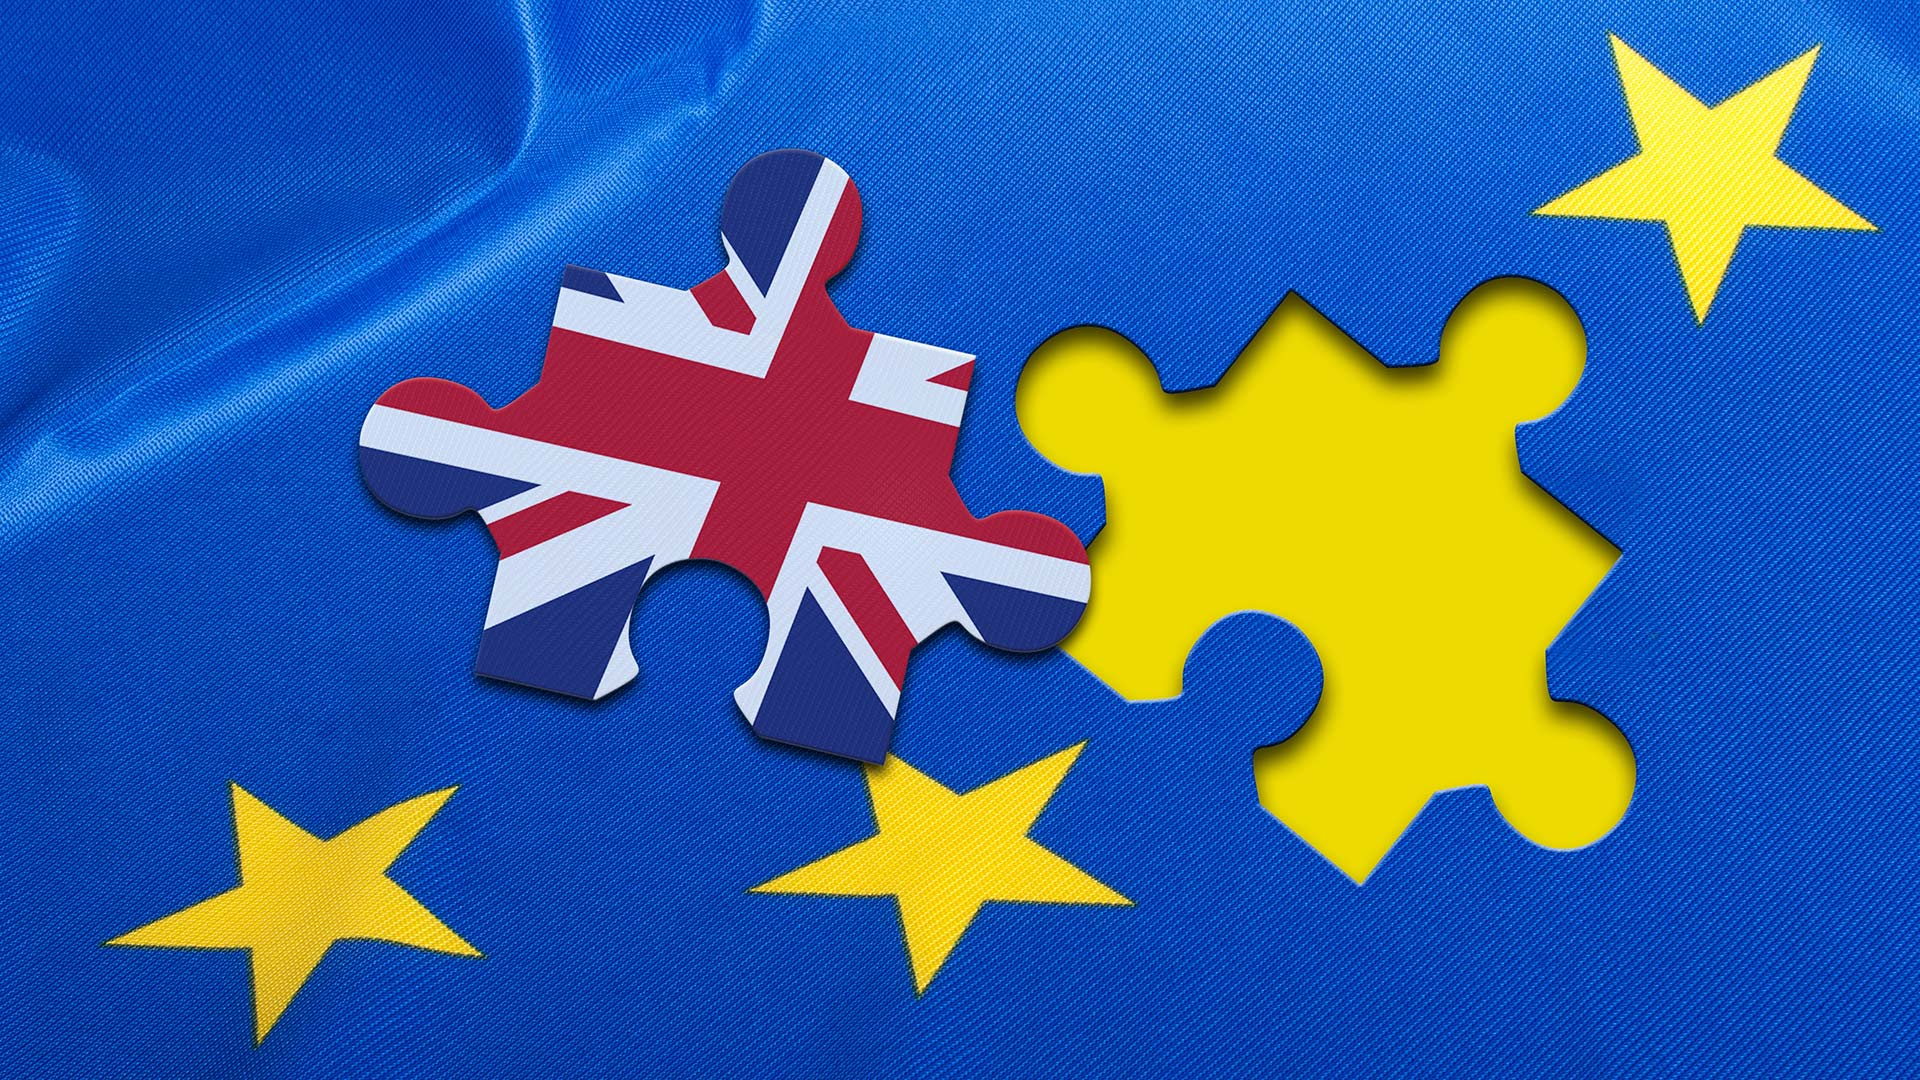 UK safety regulation after Brexit: What you need to know